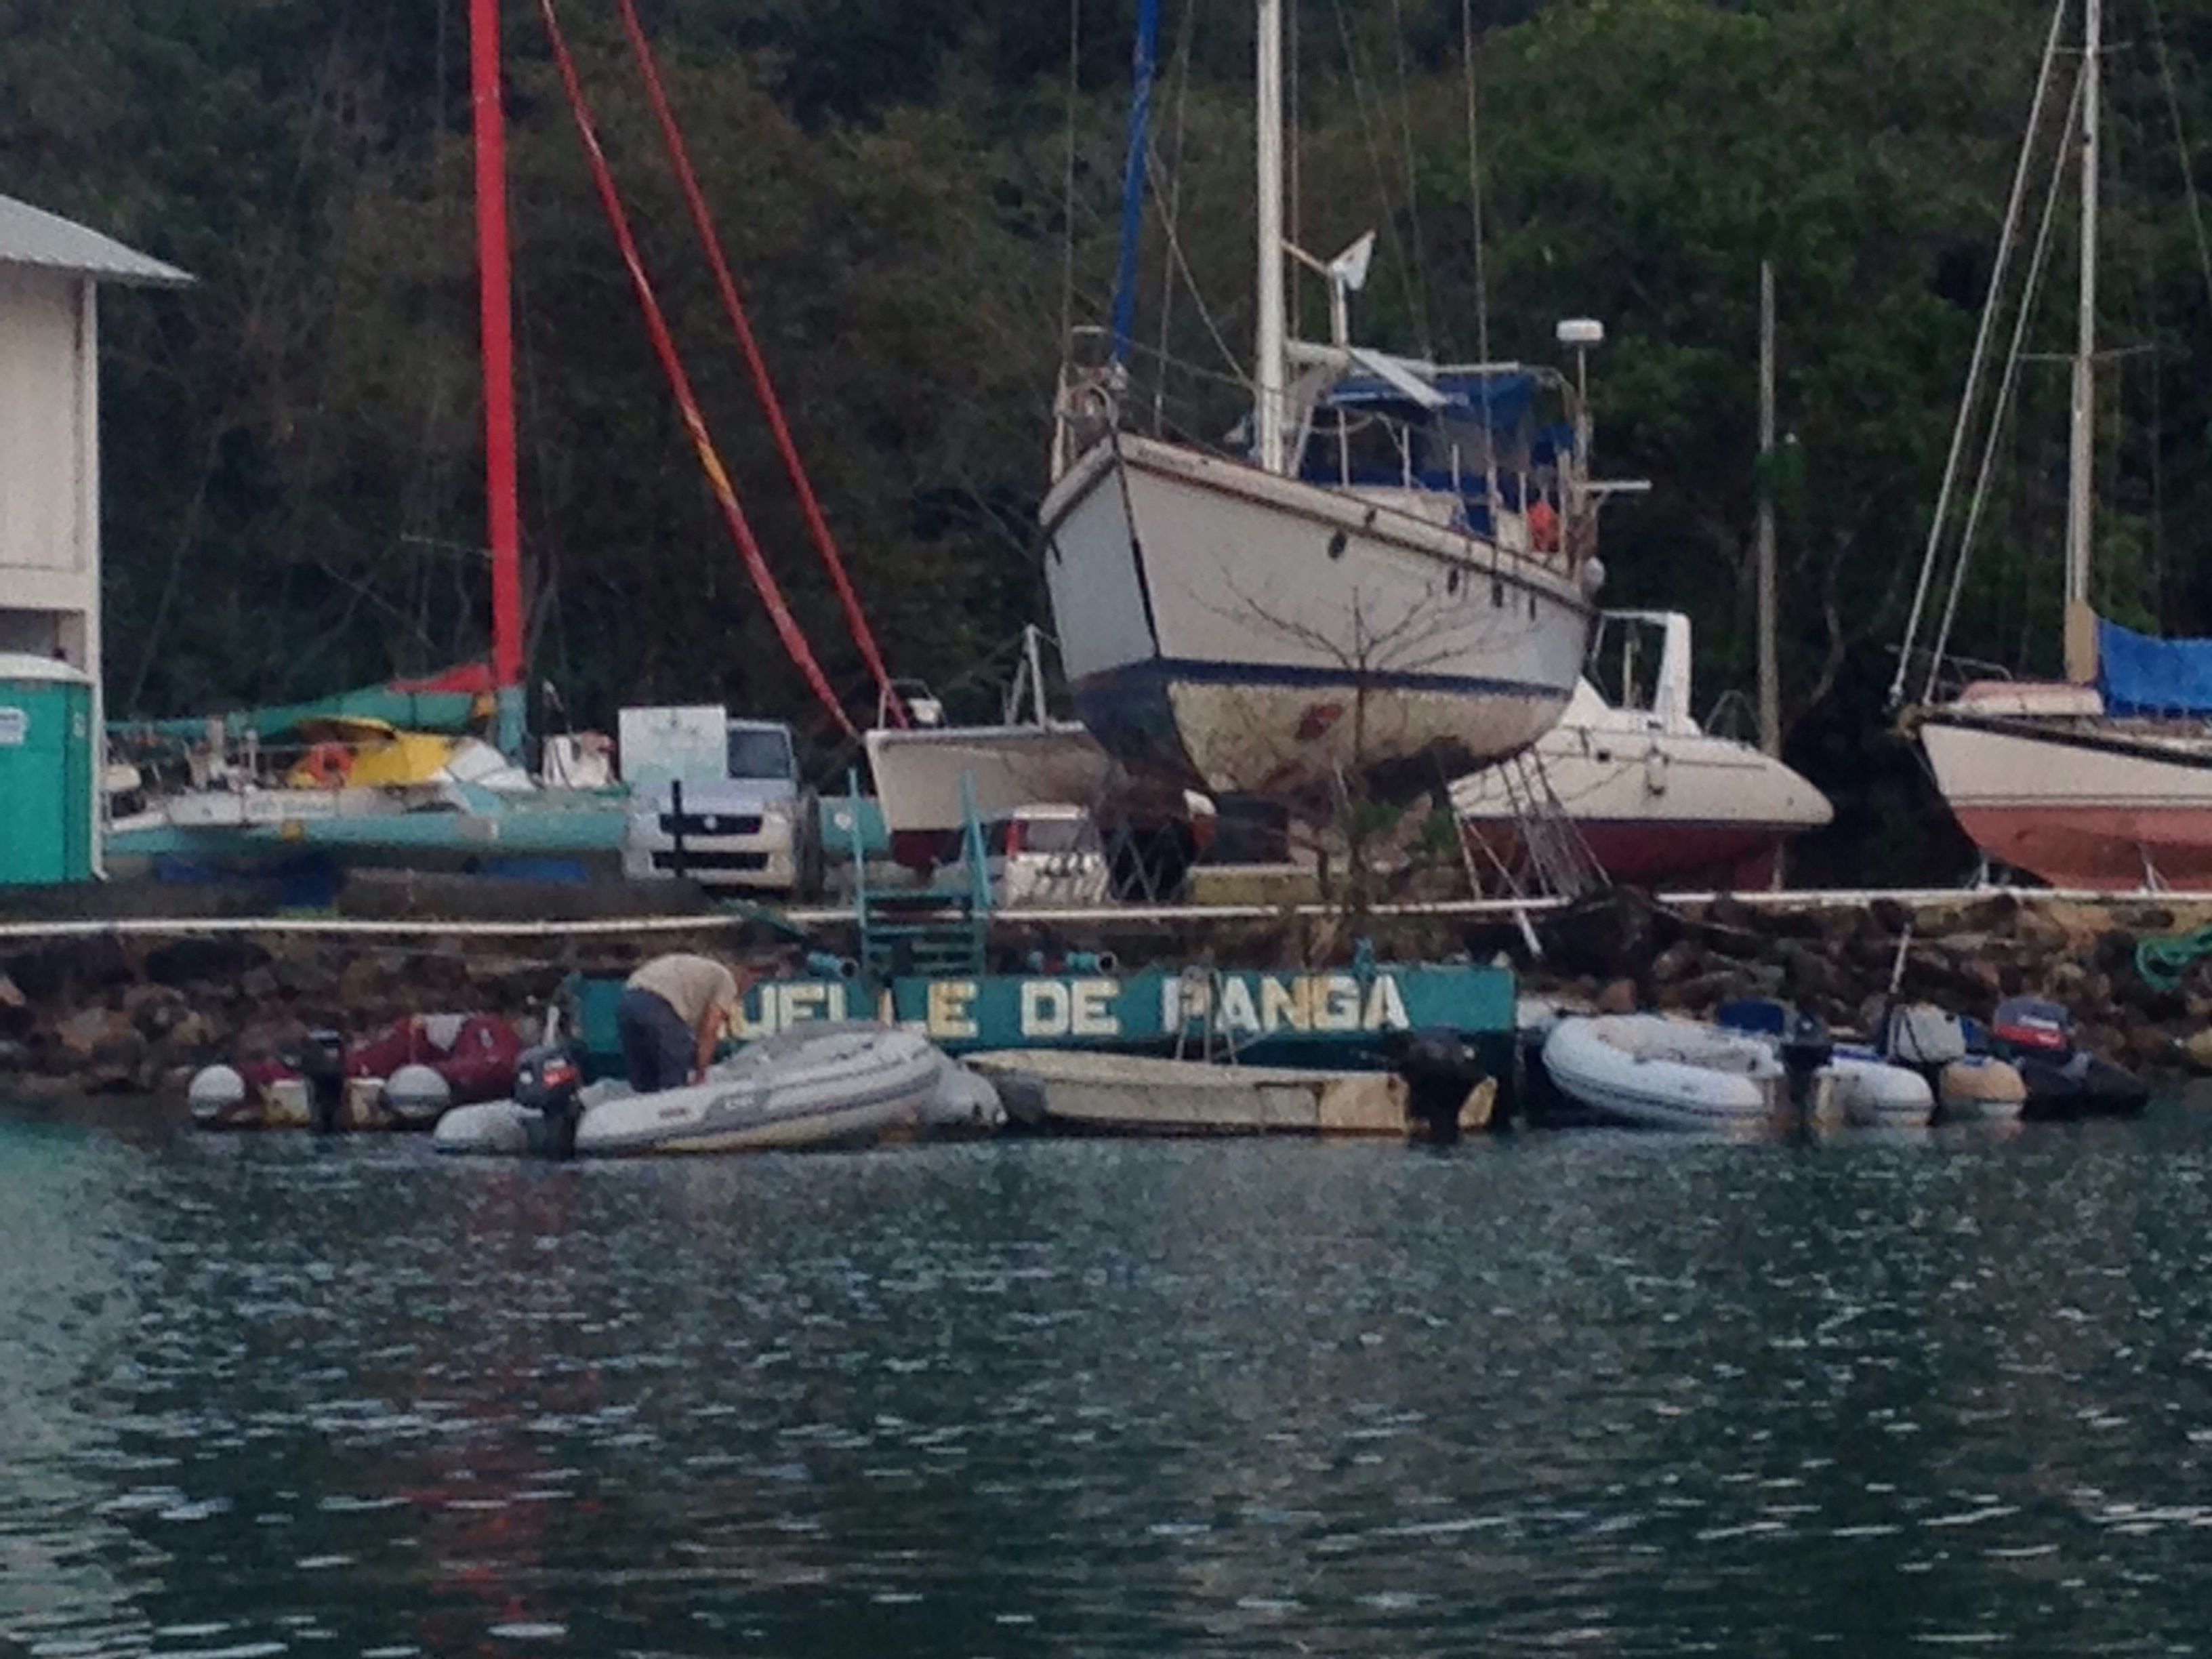 Dinghy dock or panga dock.